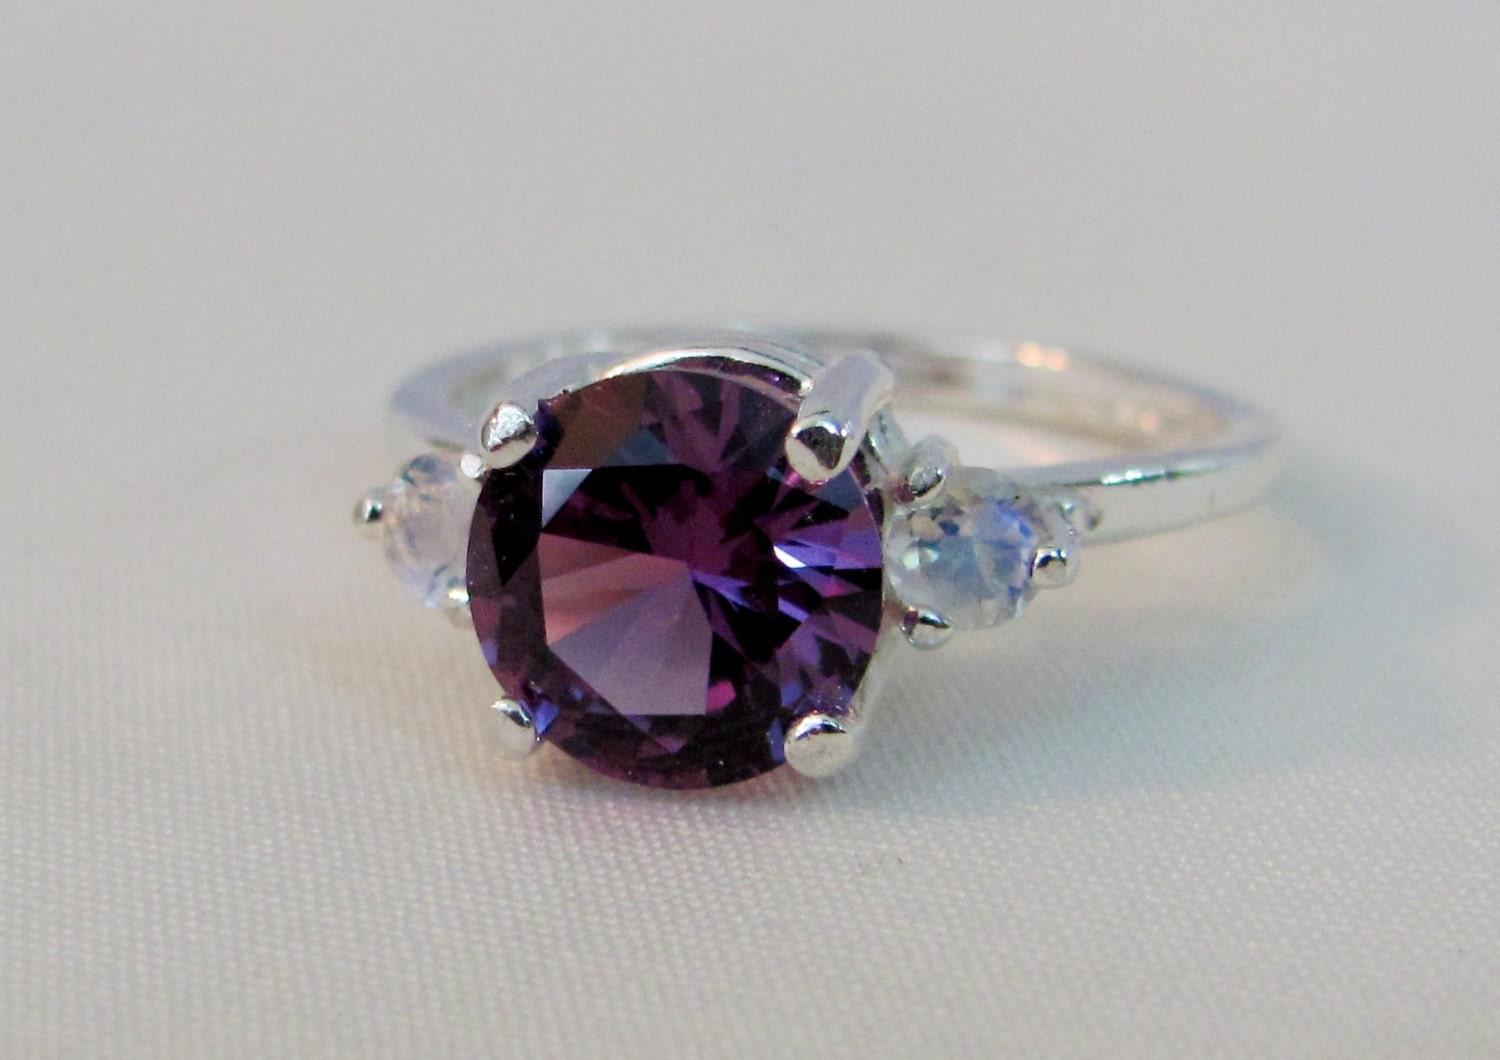 silver sterling birthstone jewelry ring wedding bridal rings oval june in alexandrite solid sets from item gemstone cut engagement leige